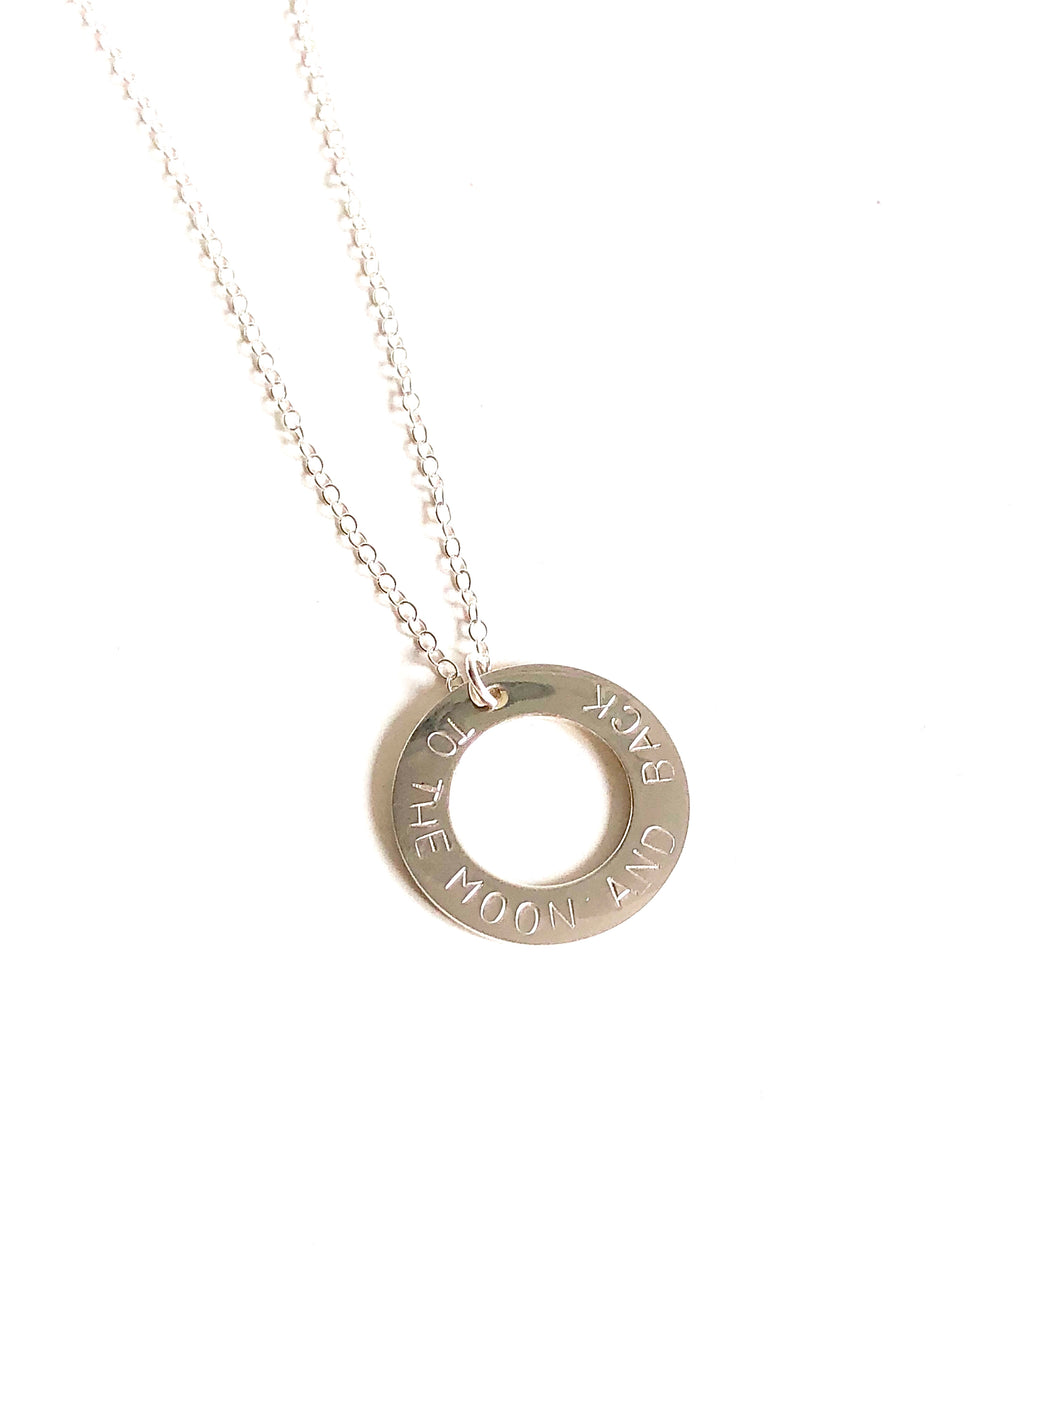 Personalised Washer Necklace- Large